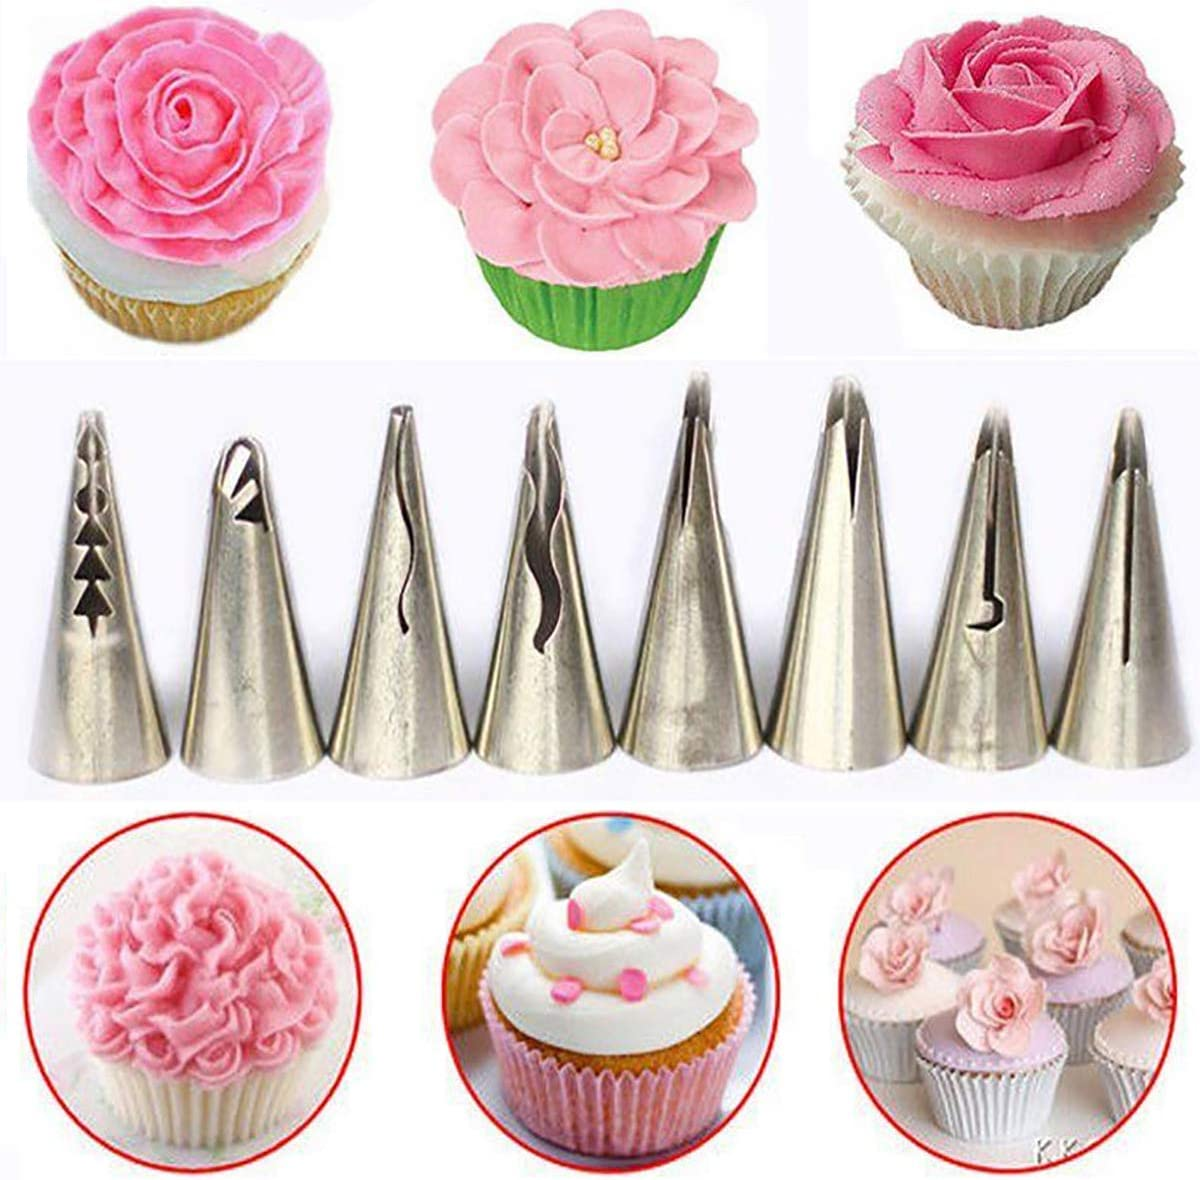 8Pcs Nozzles Tool Cake Baking Decorating Kit Set Piping tips Pastry Icing Bag